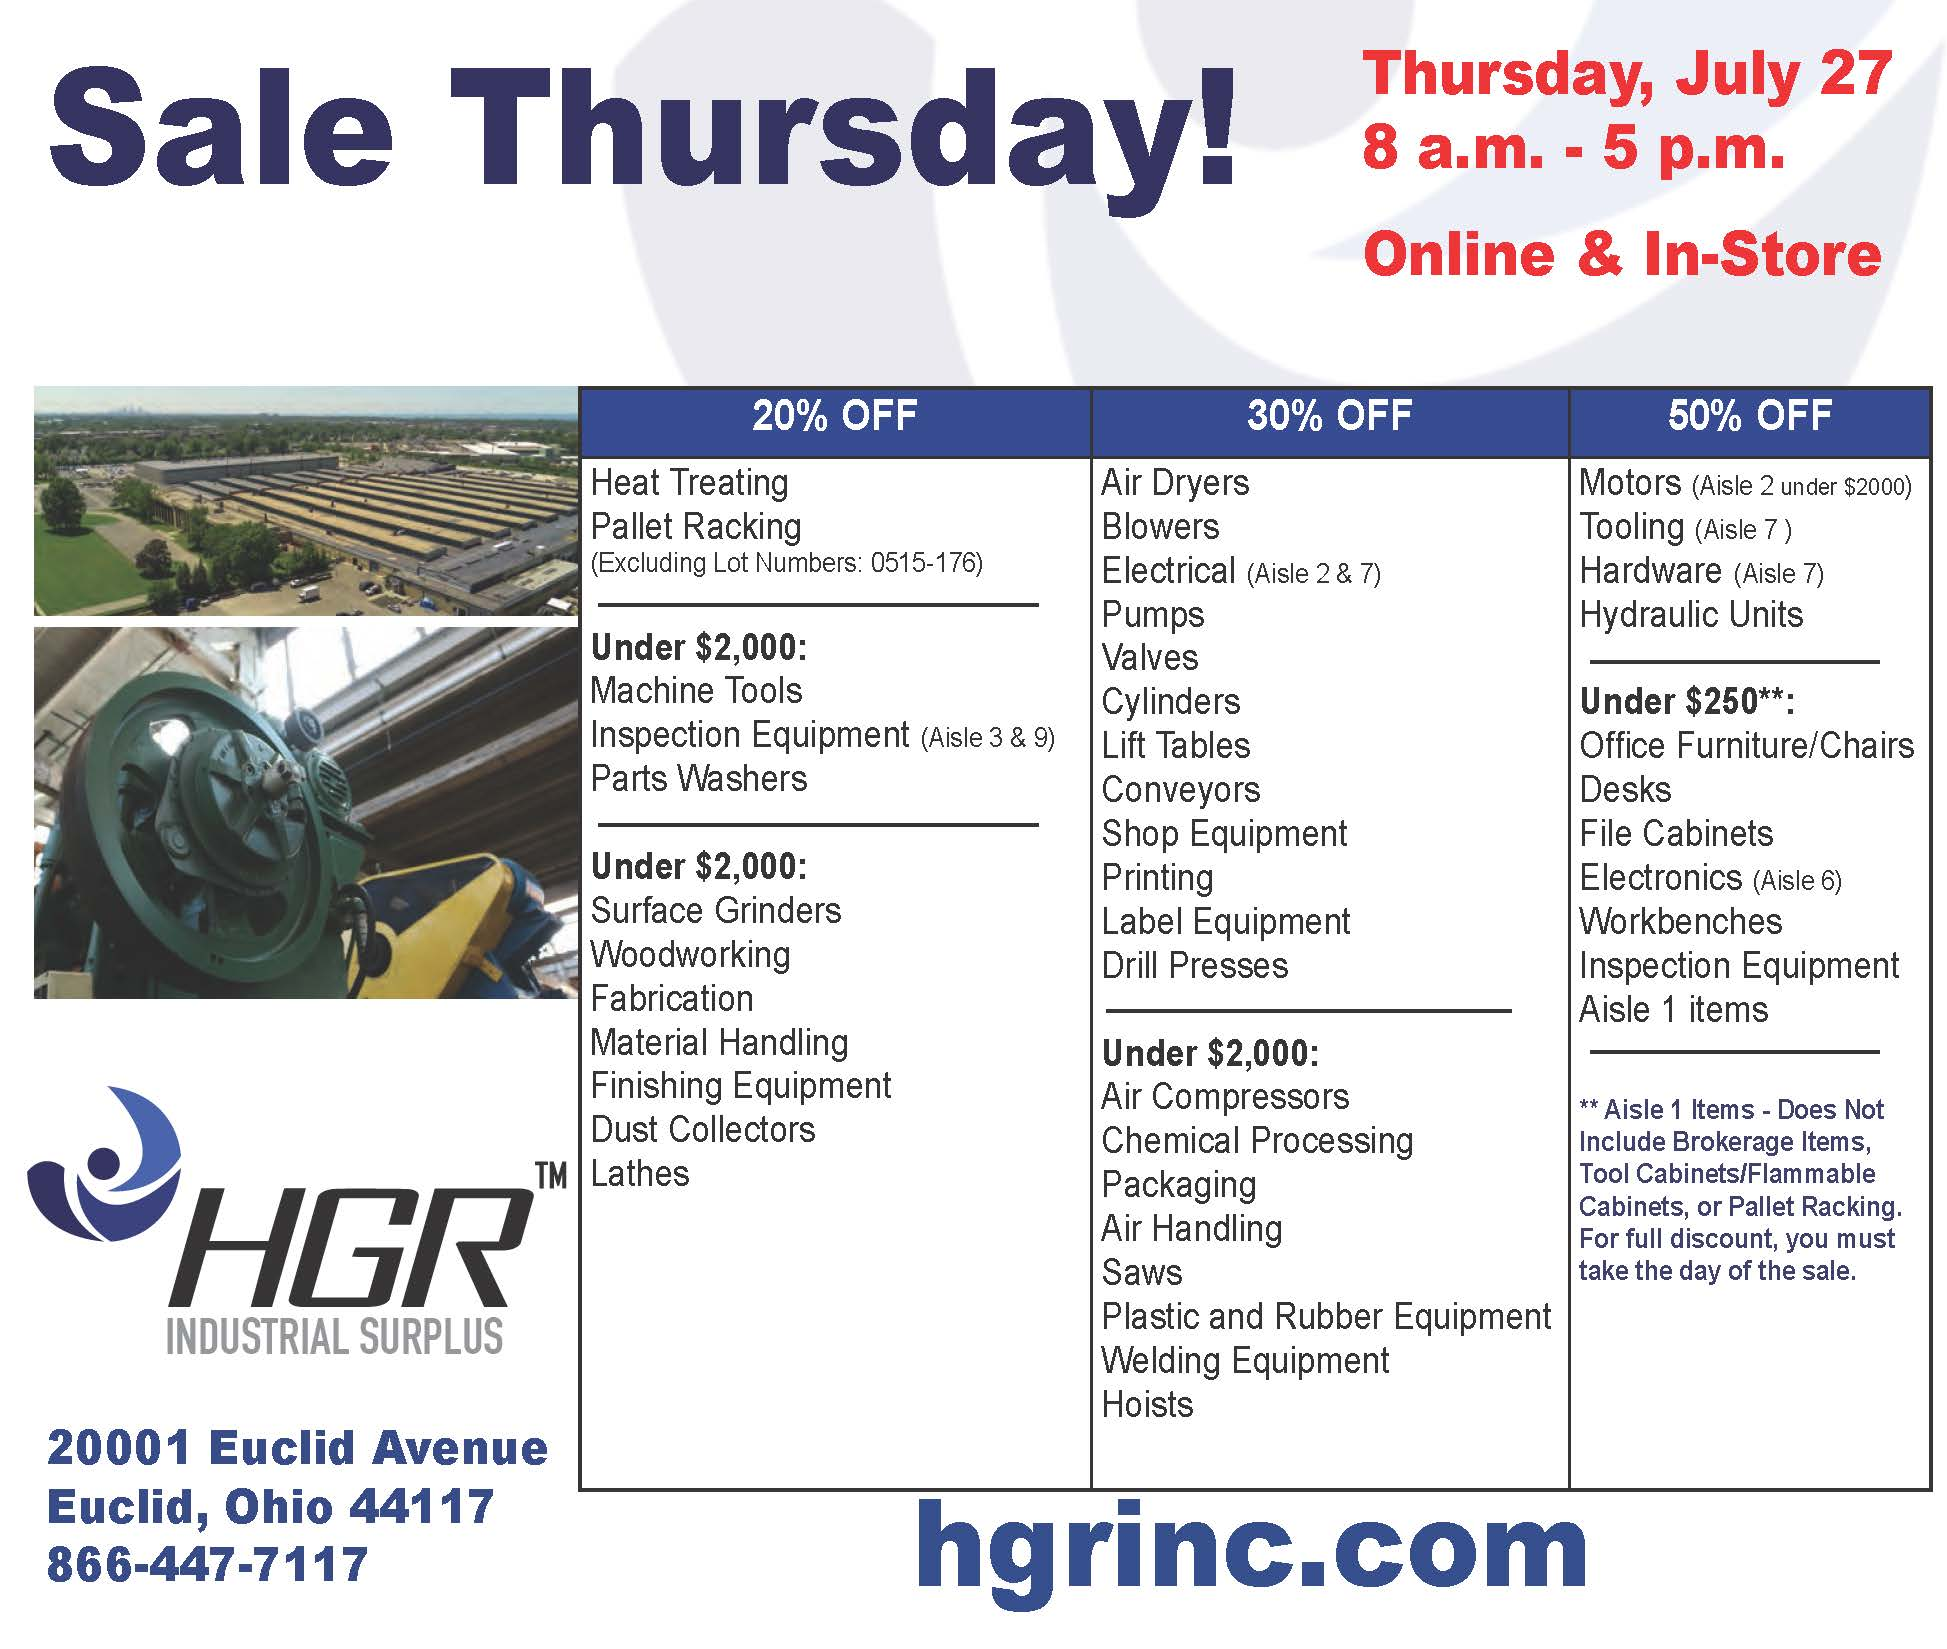 July 27, 2017 HGR Industrial Surplus end-of-month sale flyer